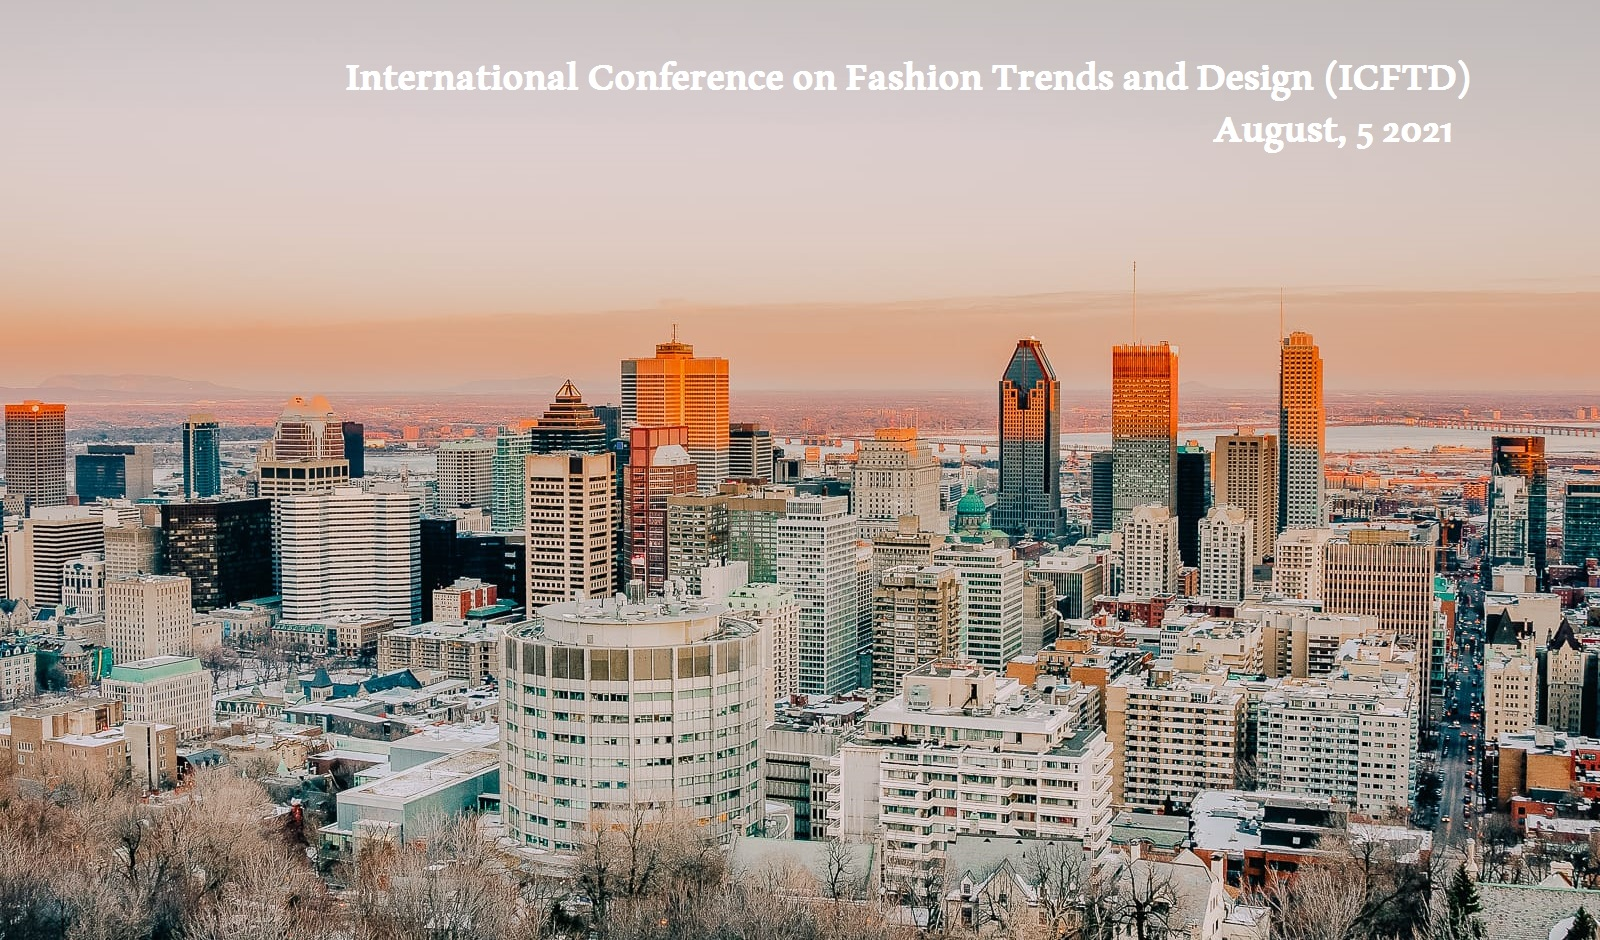 Conference on Fashion Trends